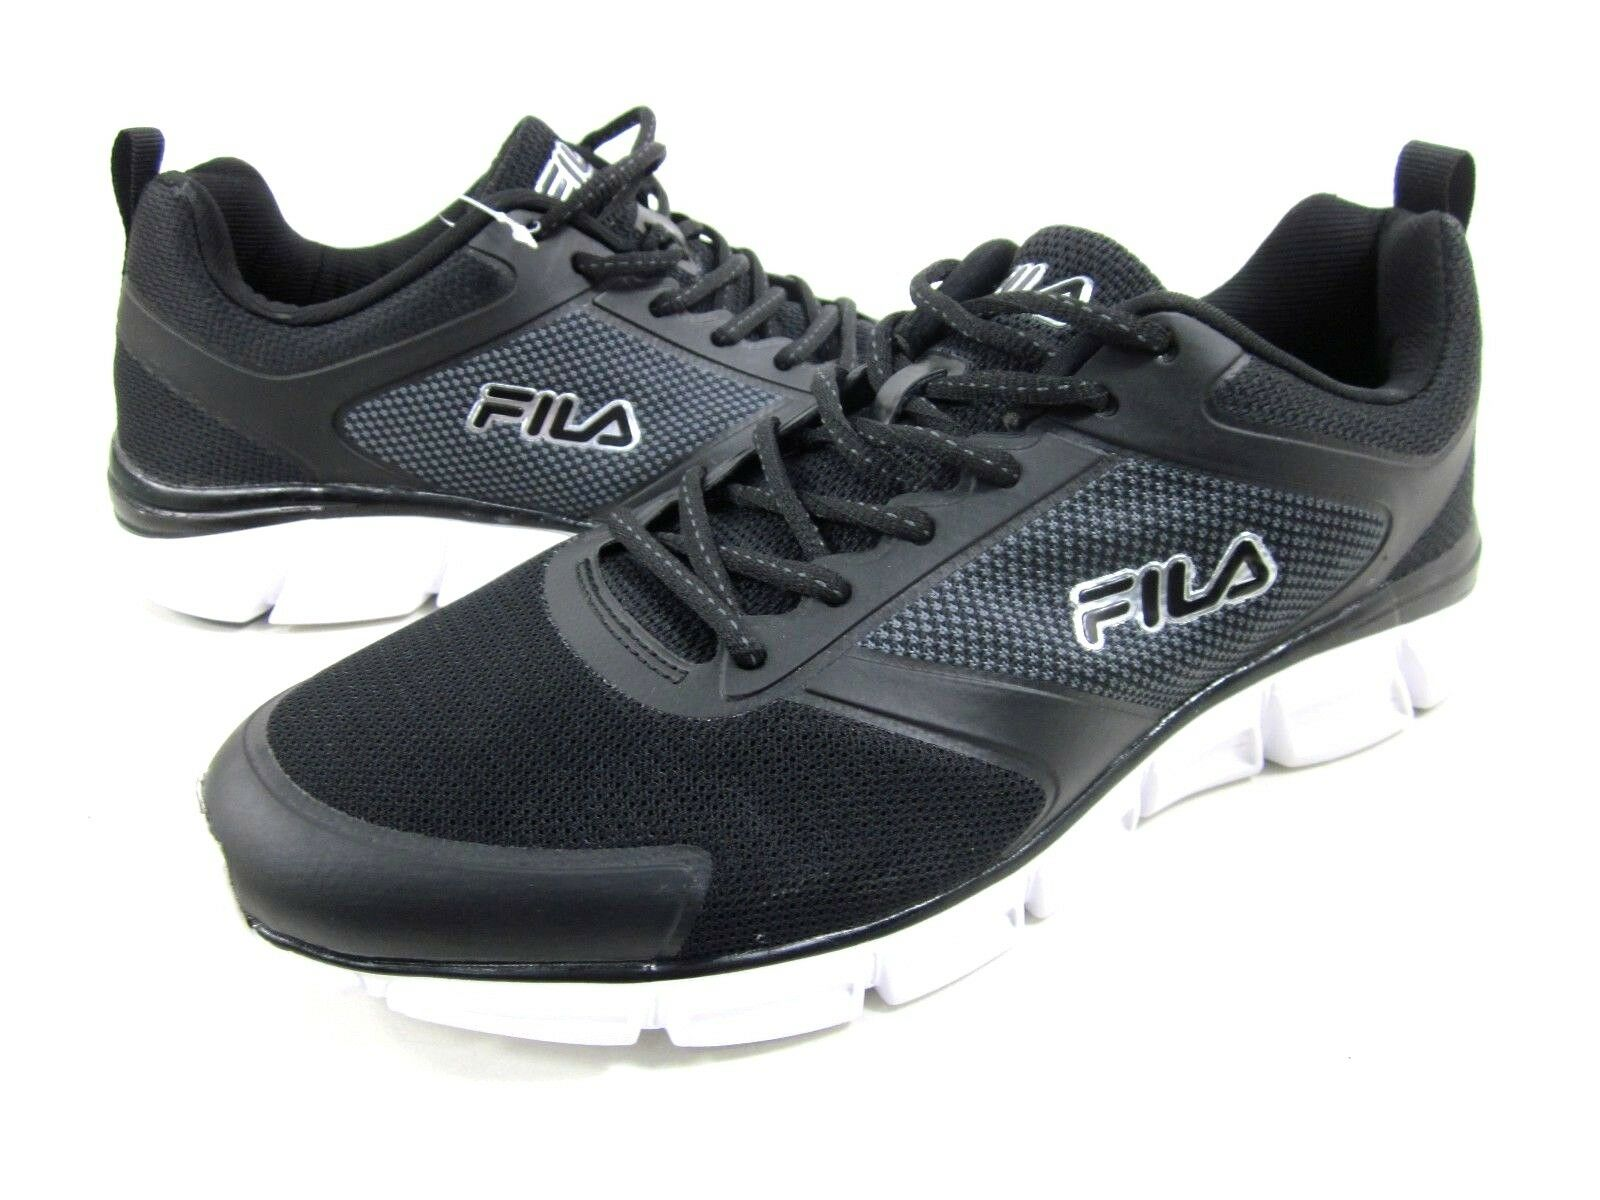 FILA MEN'S WINDSHIFT 15 ATHLETIC RUNNING SHOES,BLACK/WHITE,US SIZE 11,MEDIUM, New shoes for men and women, limited time discount